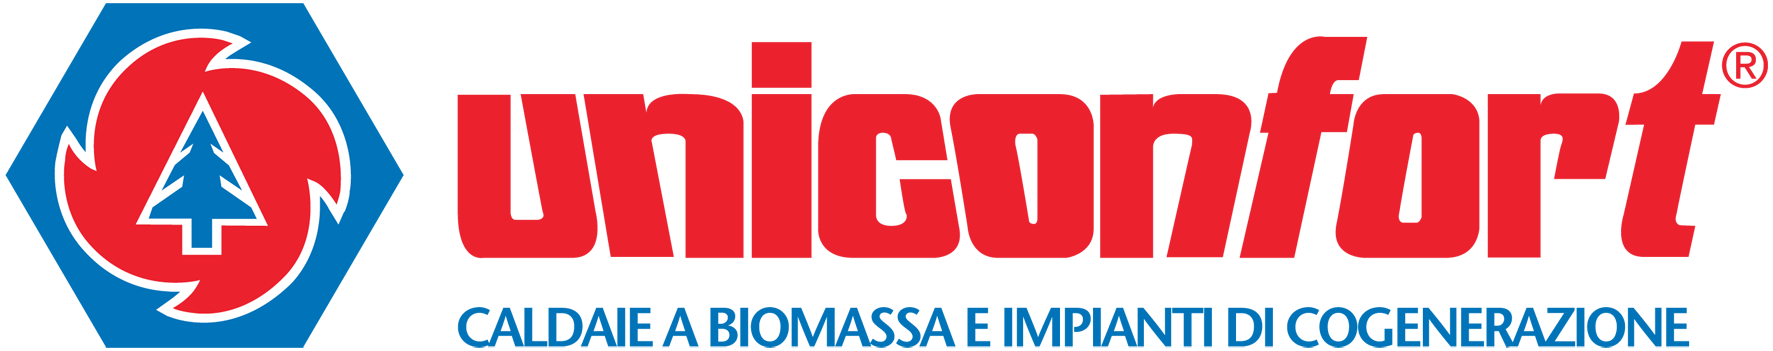 Uniconfort_logo2014_IT